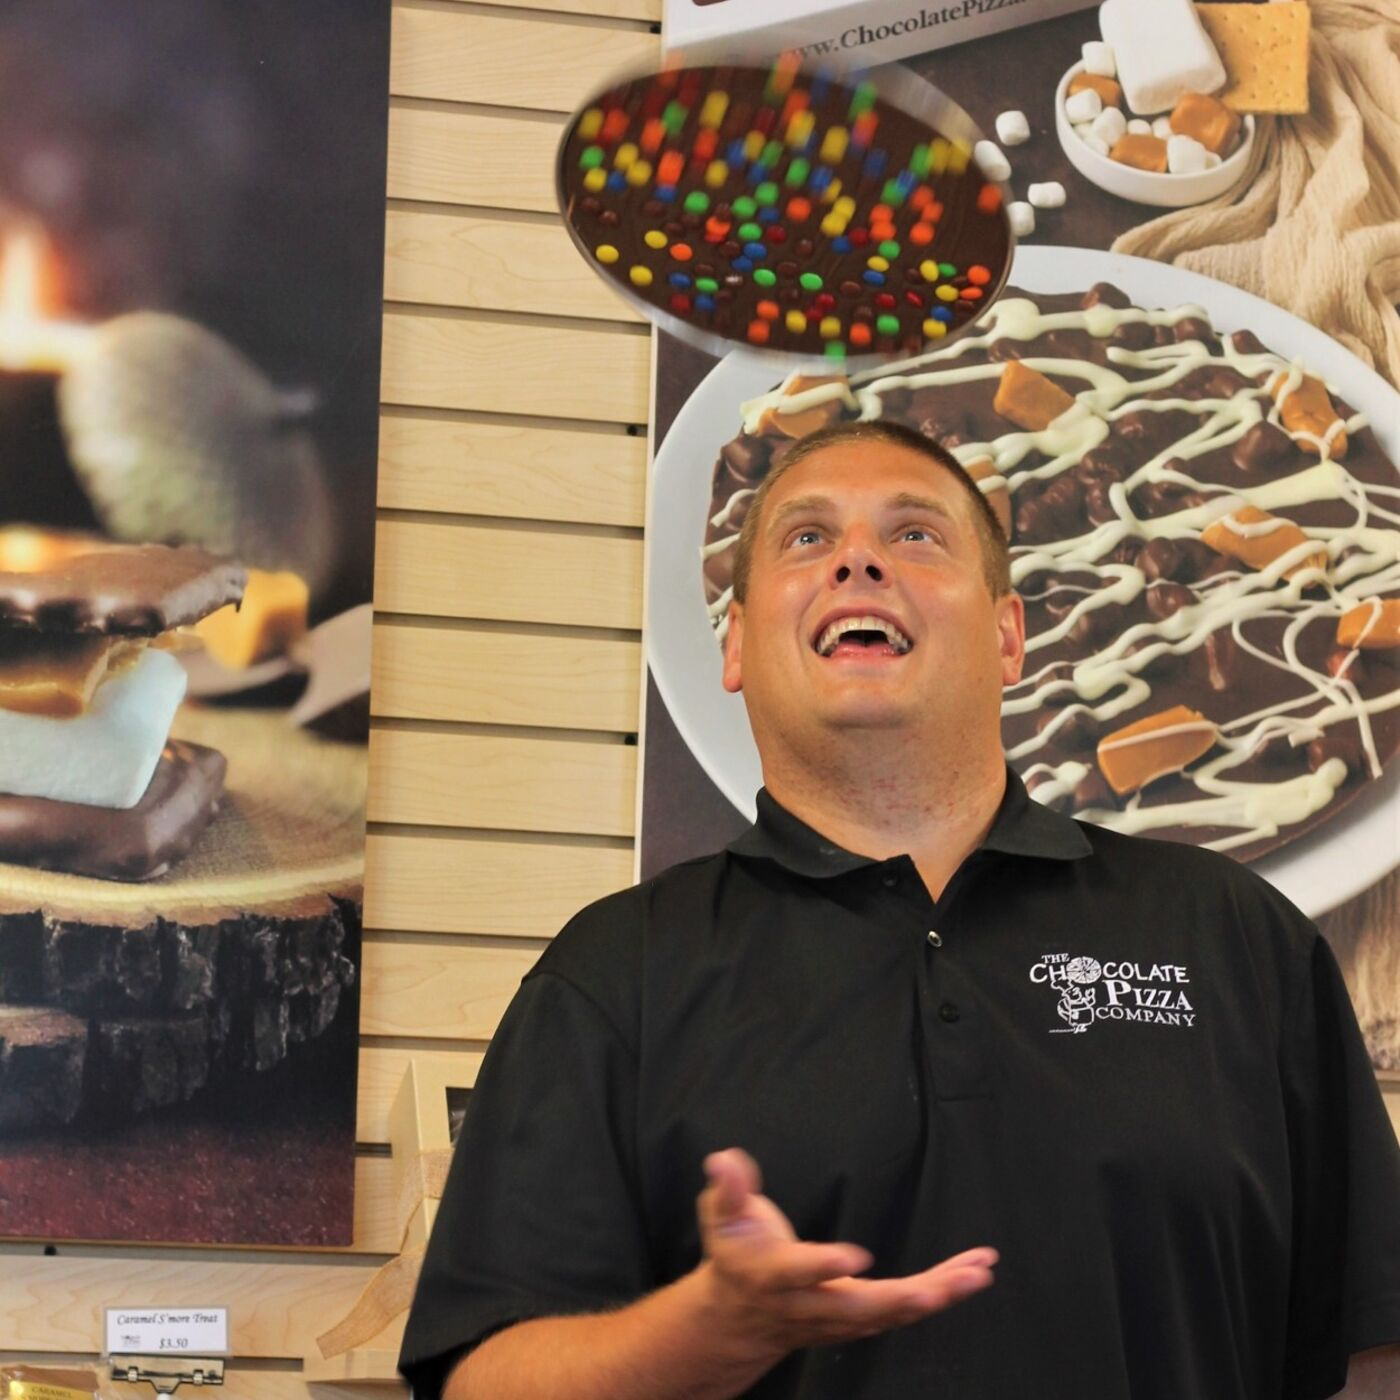 Ryan Novak of Chocolate Pizza Company